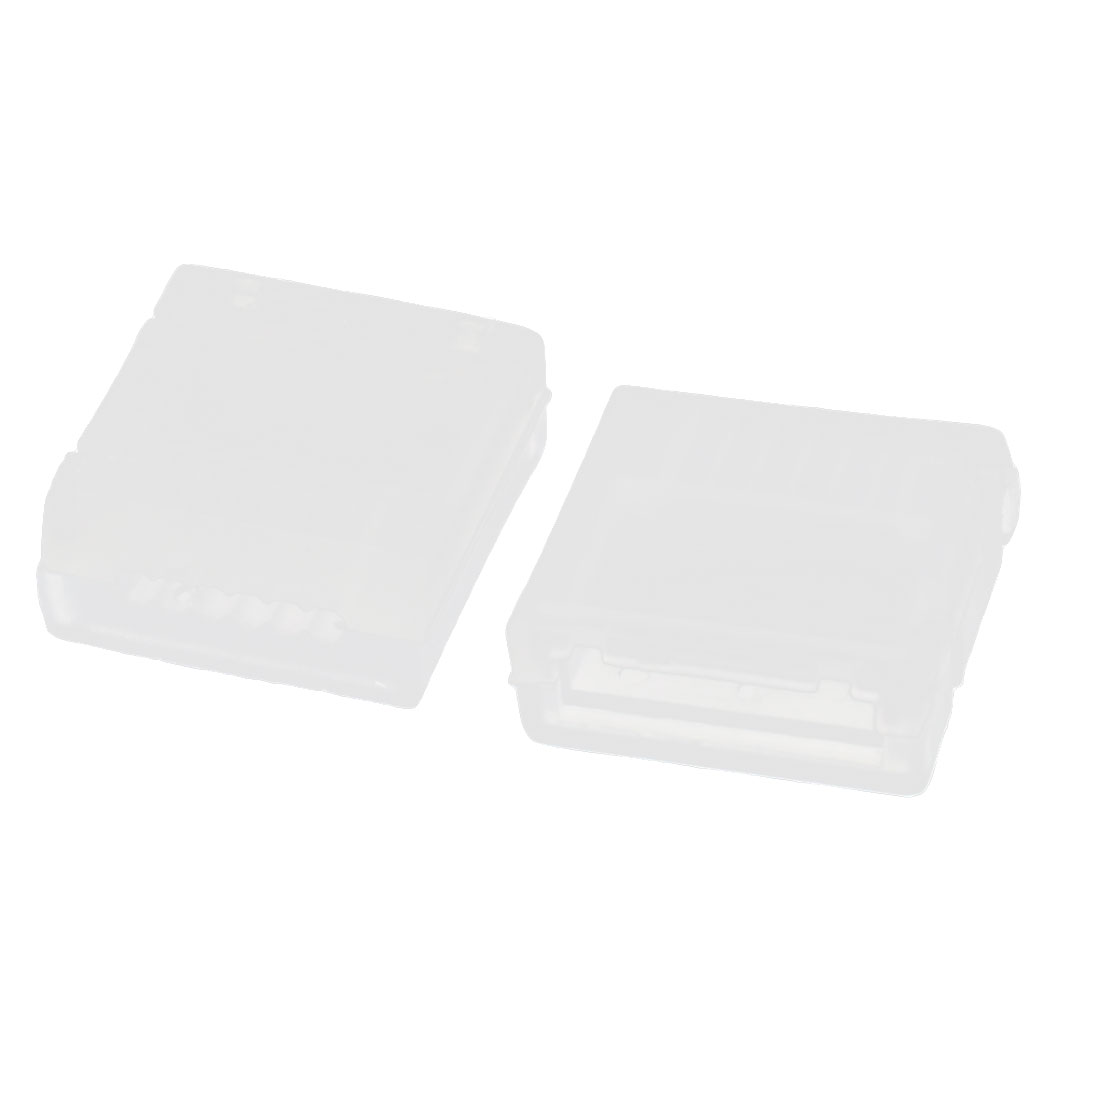 2Pcs RC 18.5V 5S RC Lipo Battery Balance Charge Plug White Plastic AB Clip Buckle Protector Cover Guard